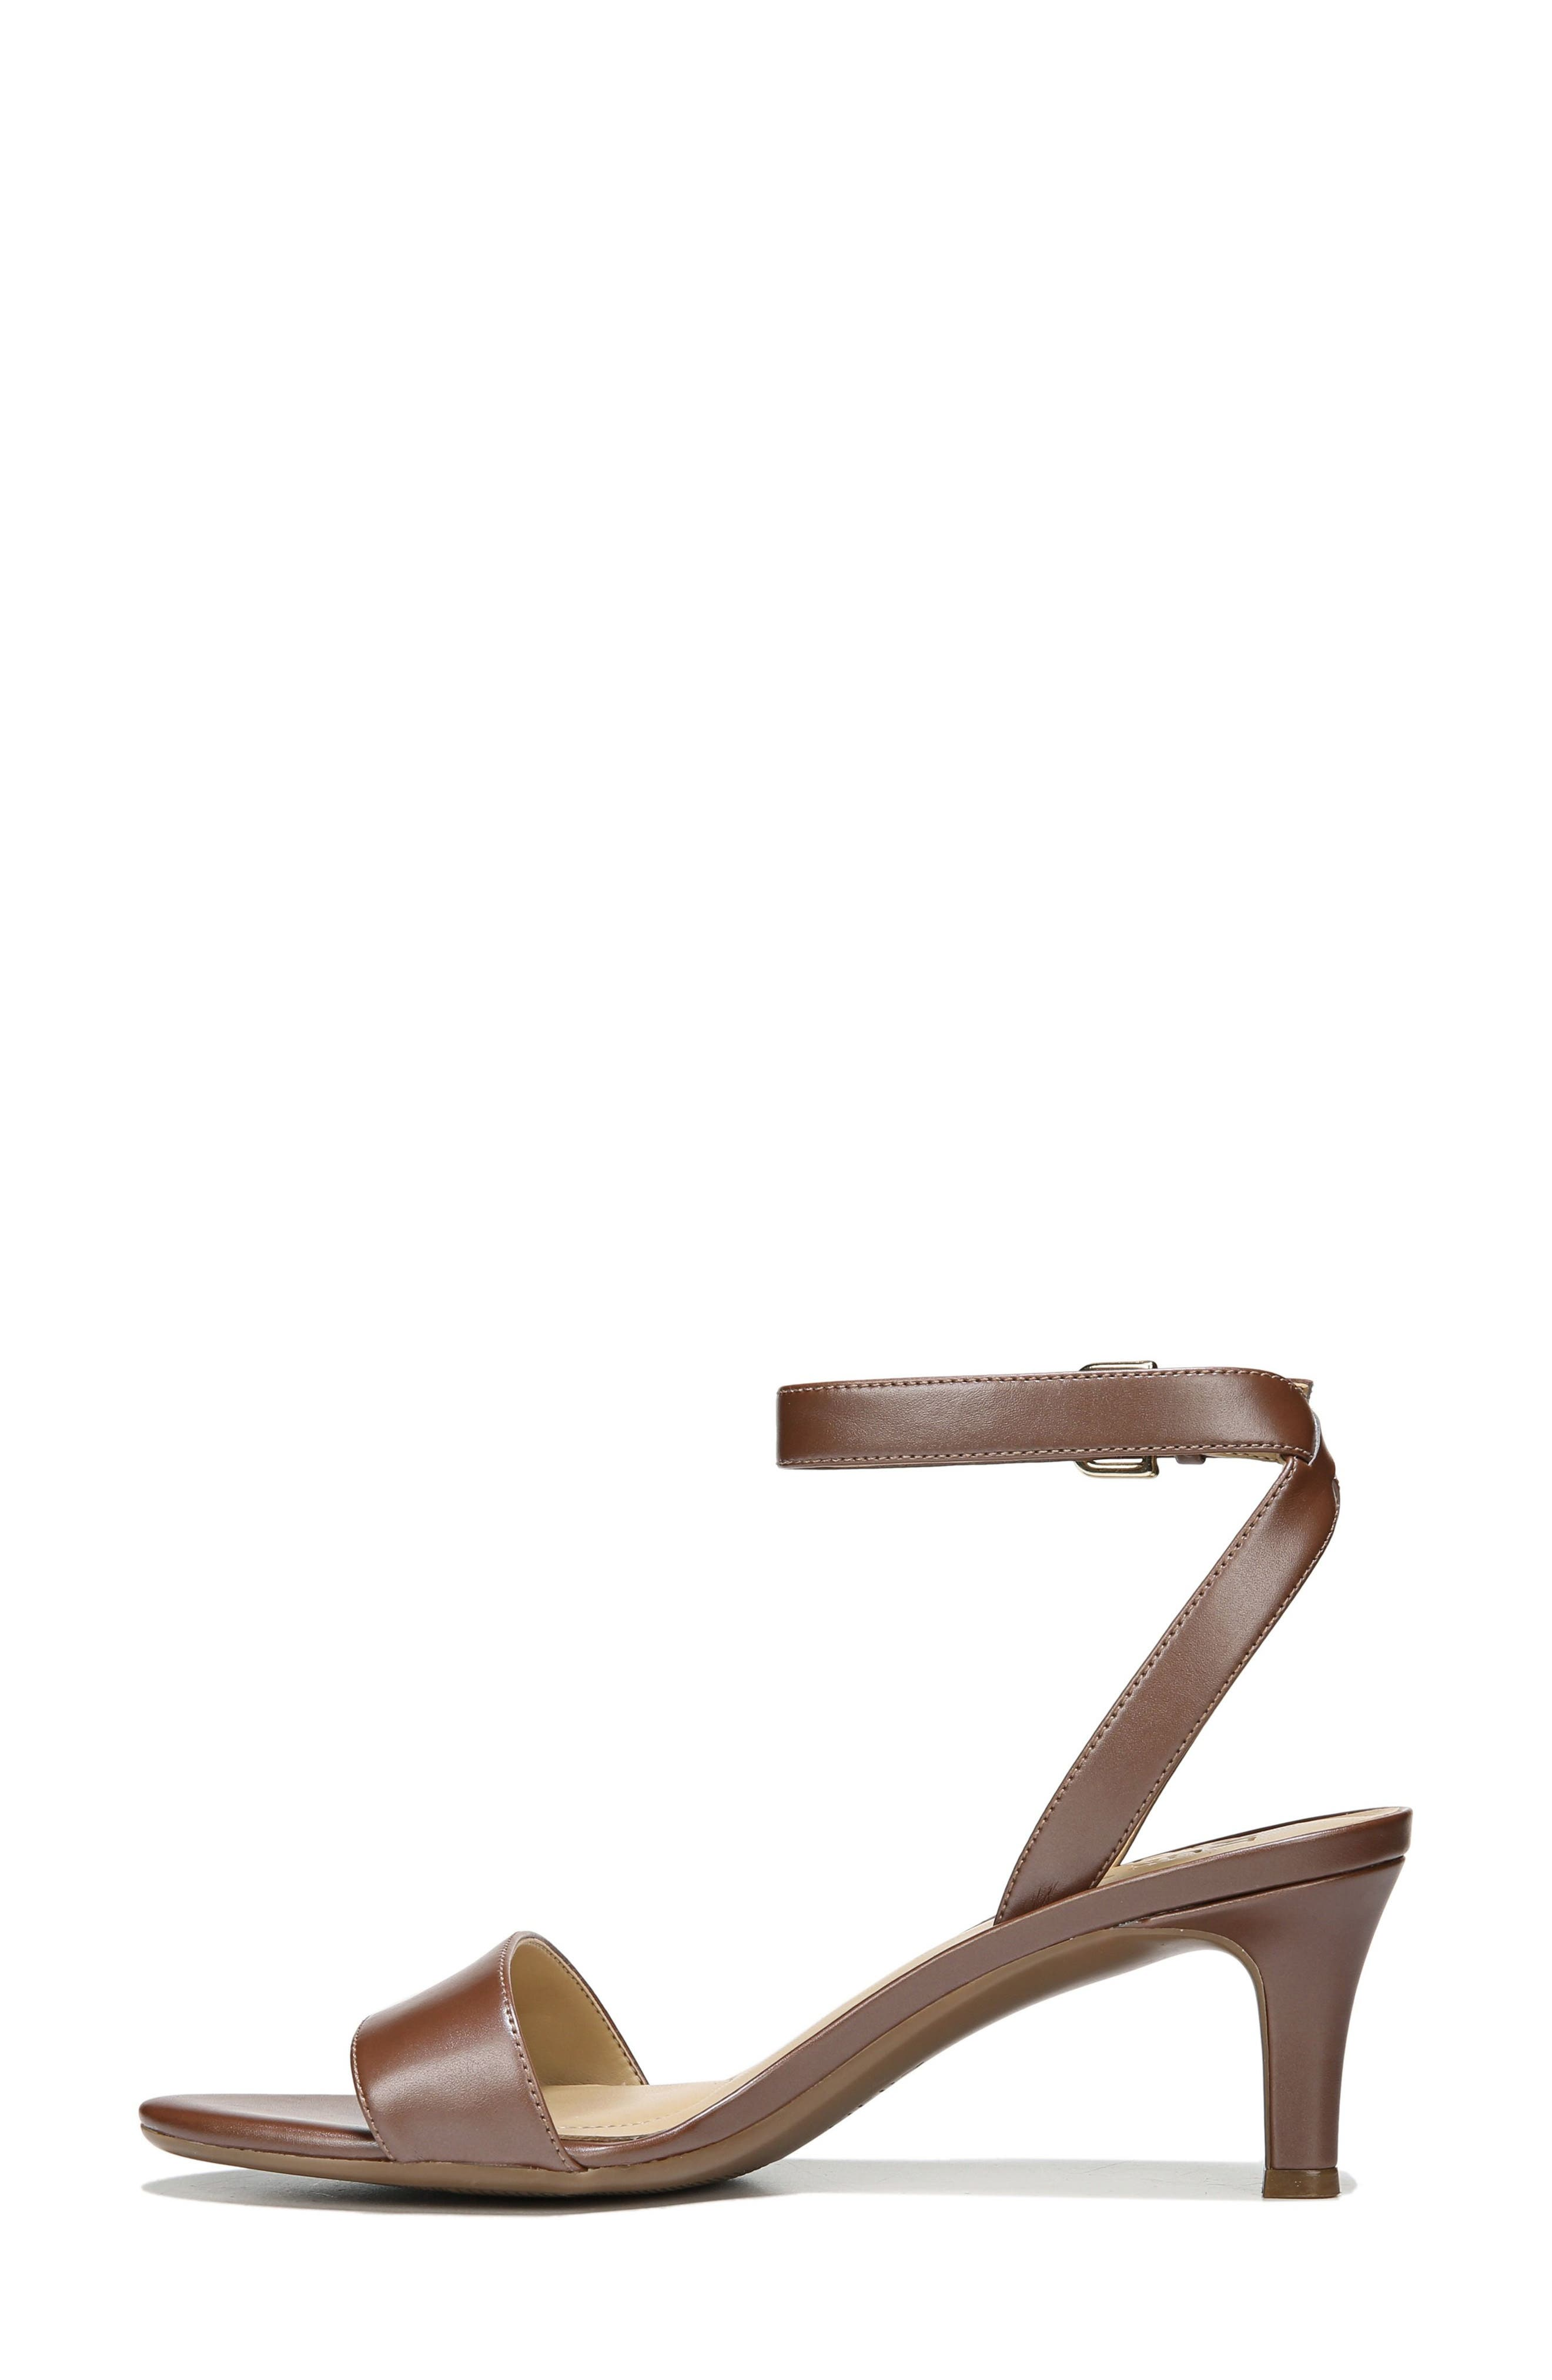 Tinda Sandal,                             Alternate thumbnail 19, color,